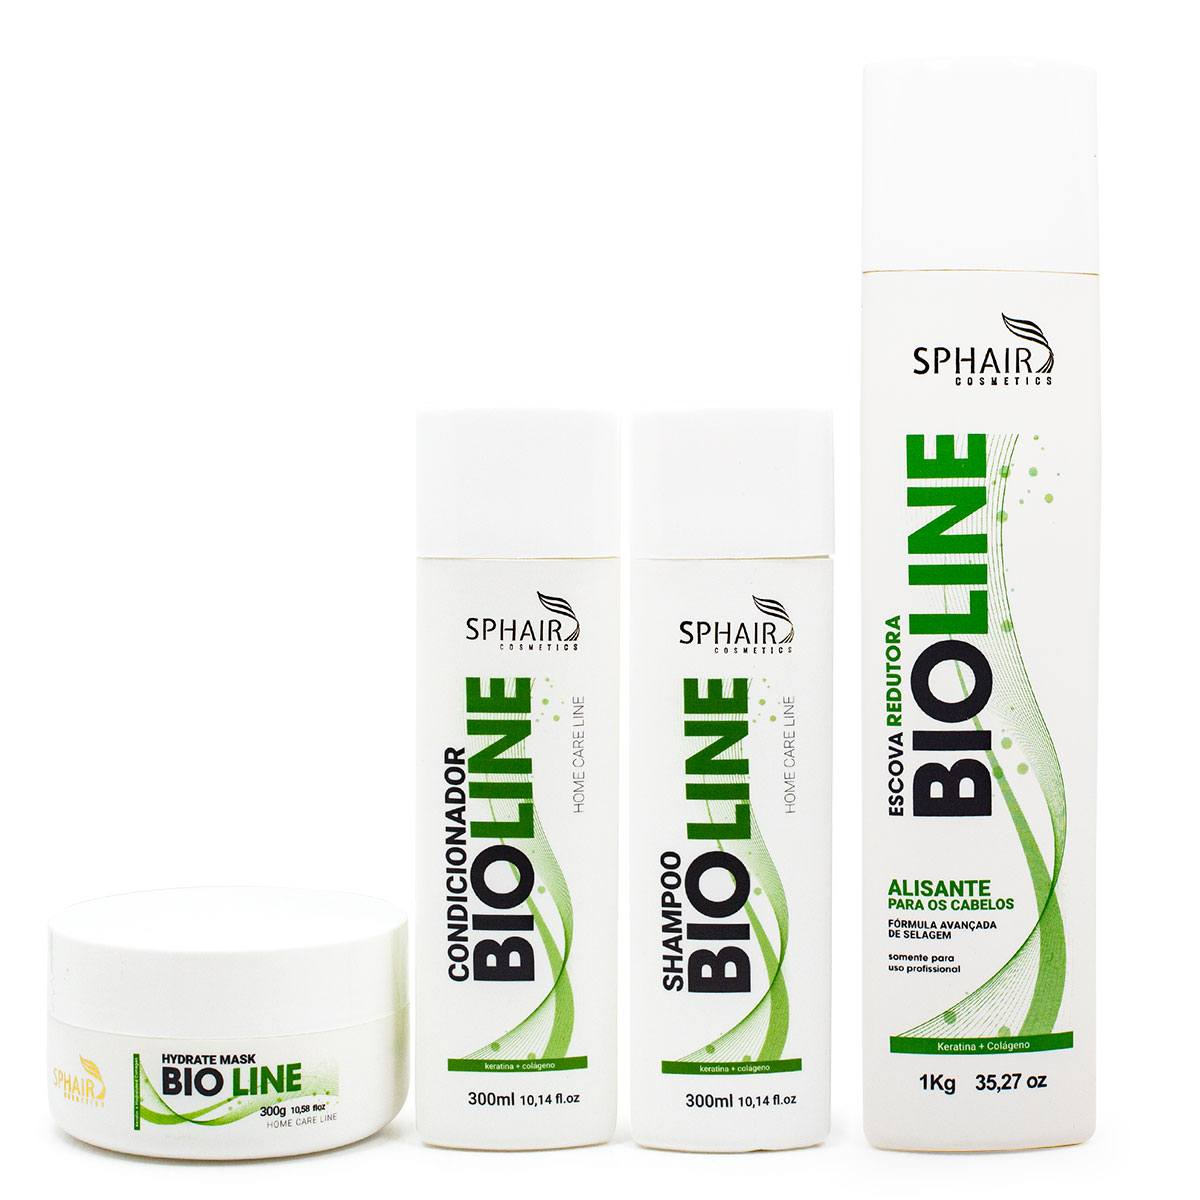 <b>Bioline Kit Completo Home Care + Progressiva</b> - De R$ 525,48 Por R$ 367,88